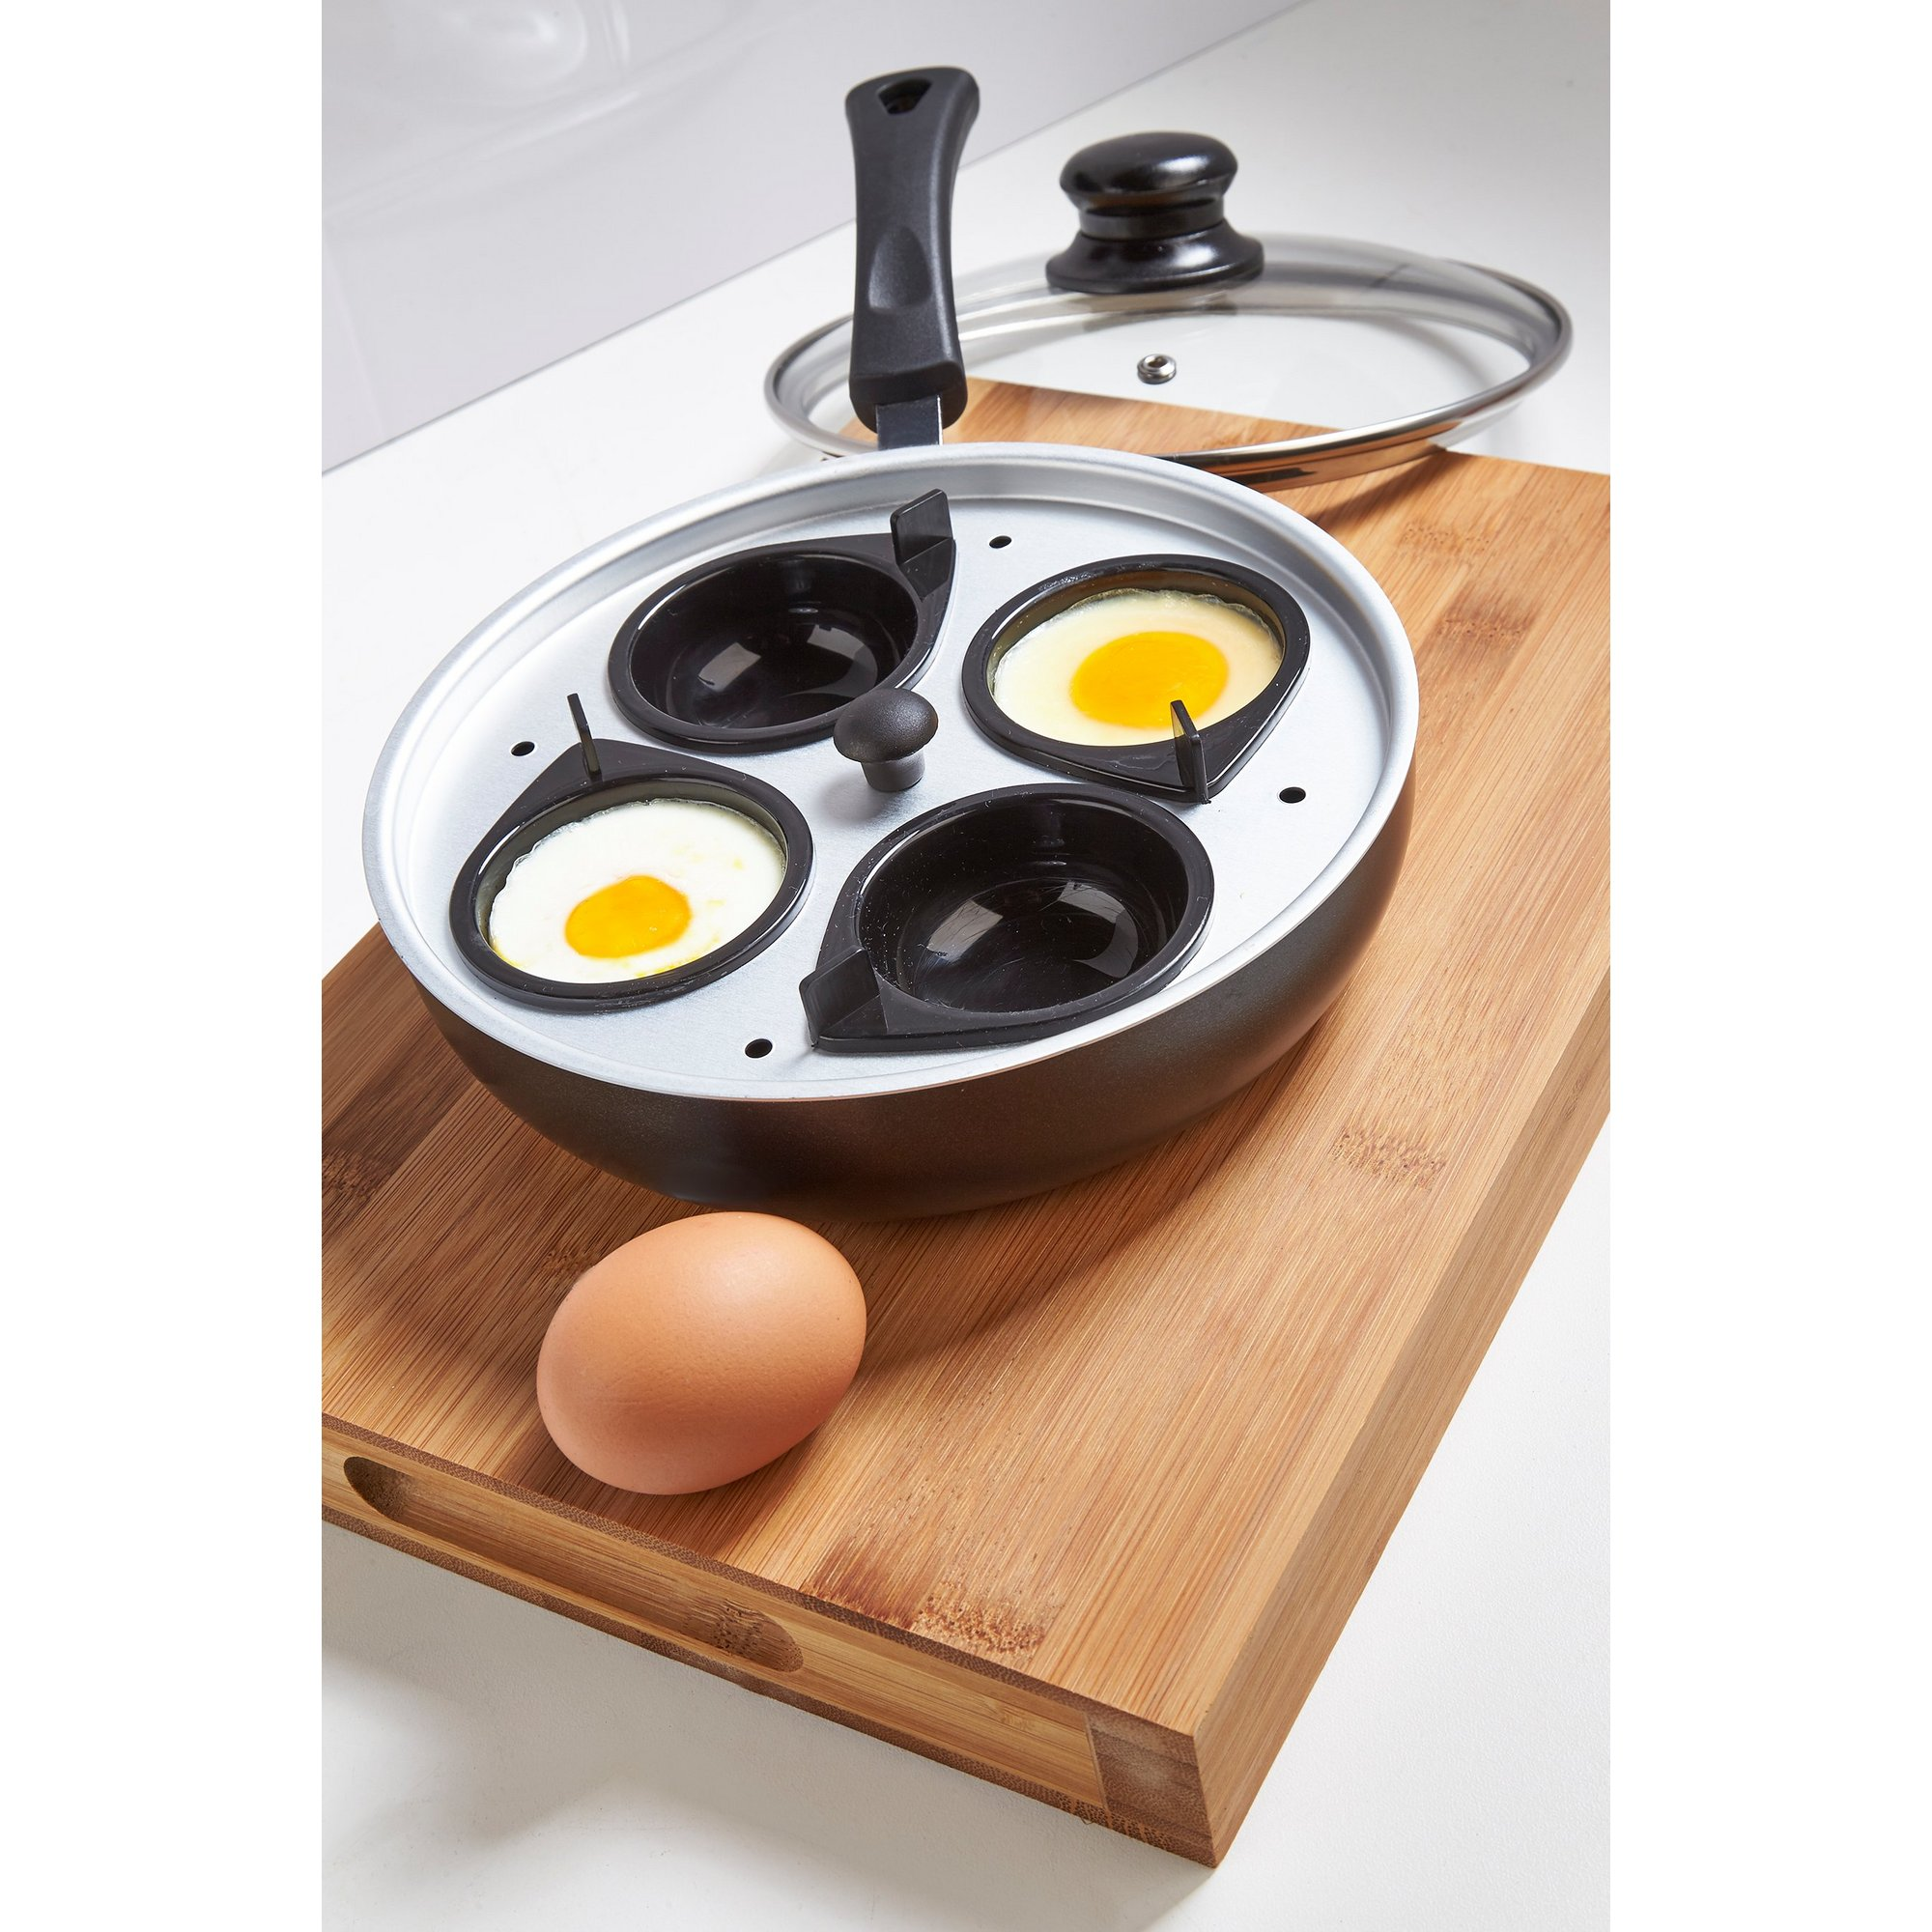 Image of Non-Stick Egg Pan